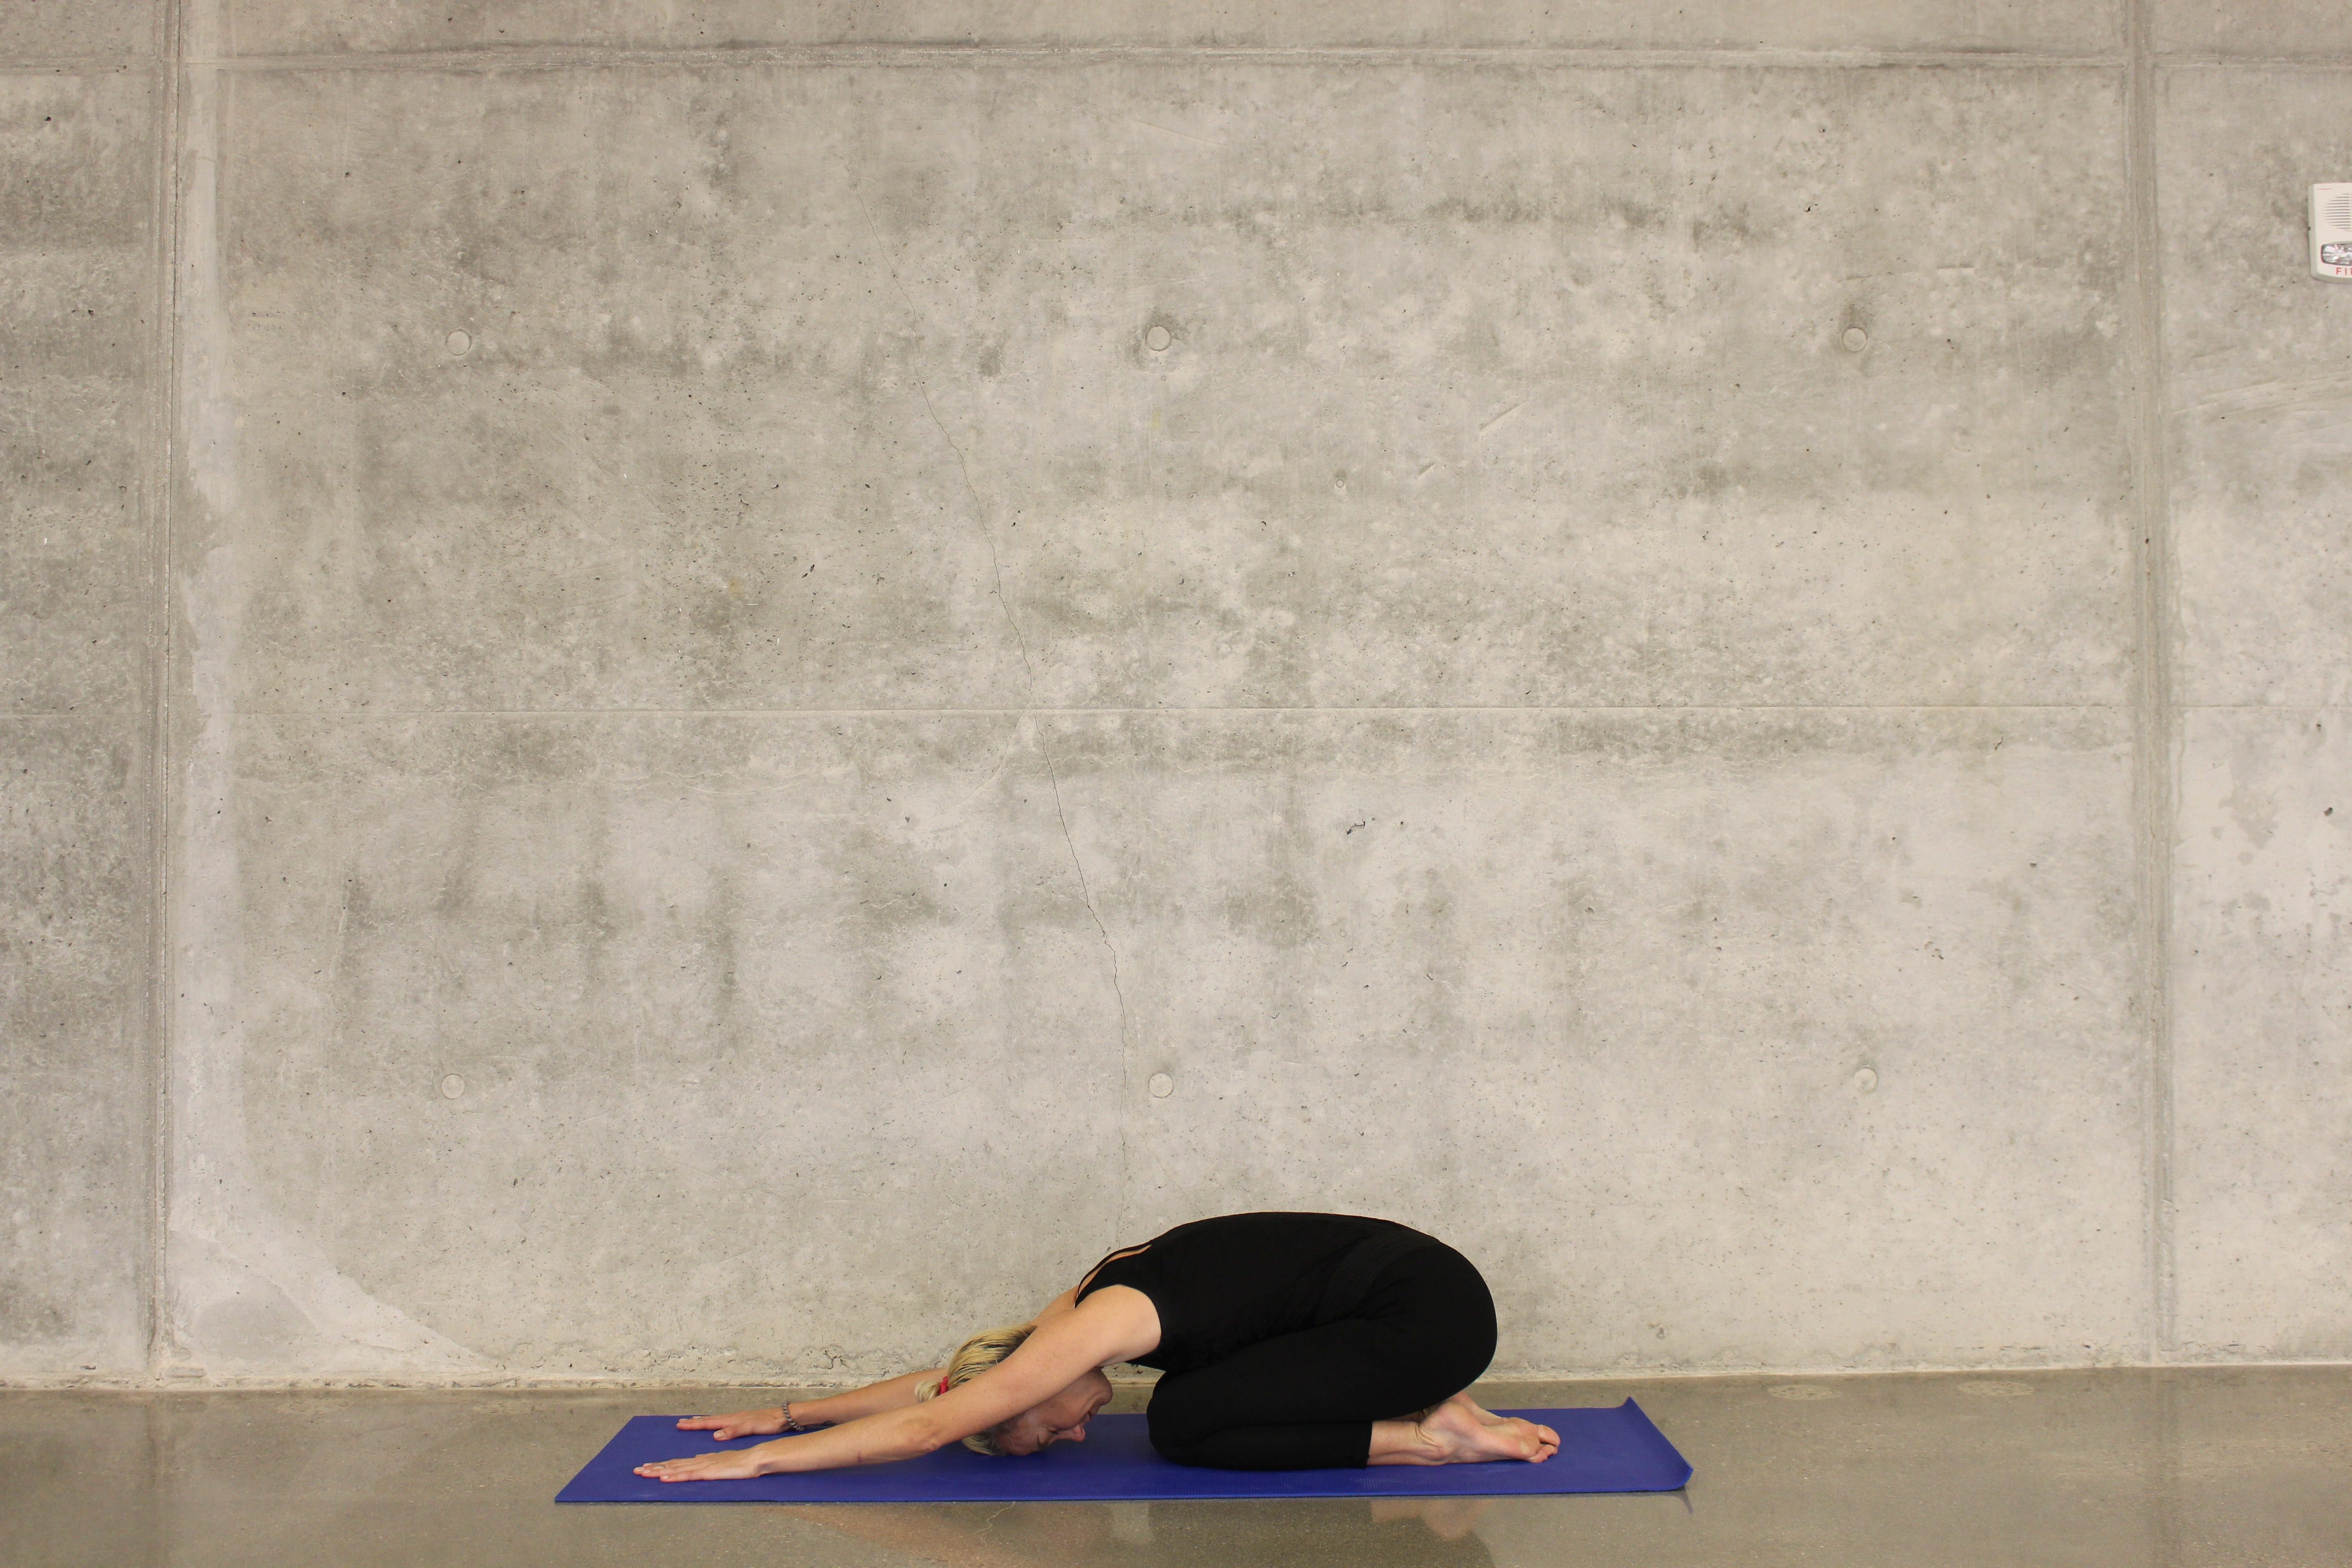 5 Simple Yoga Poses to Relieve Stress